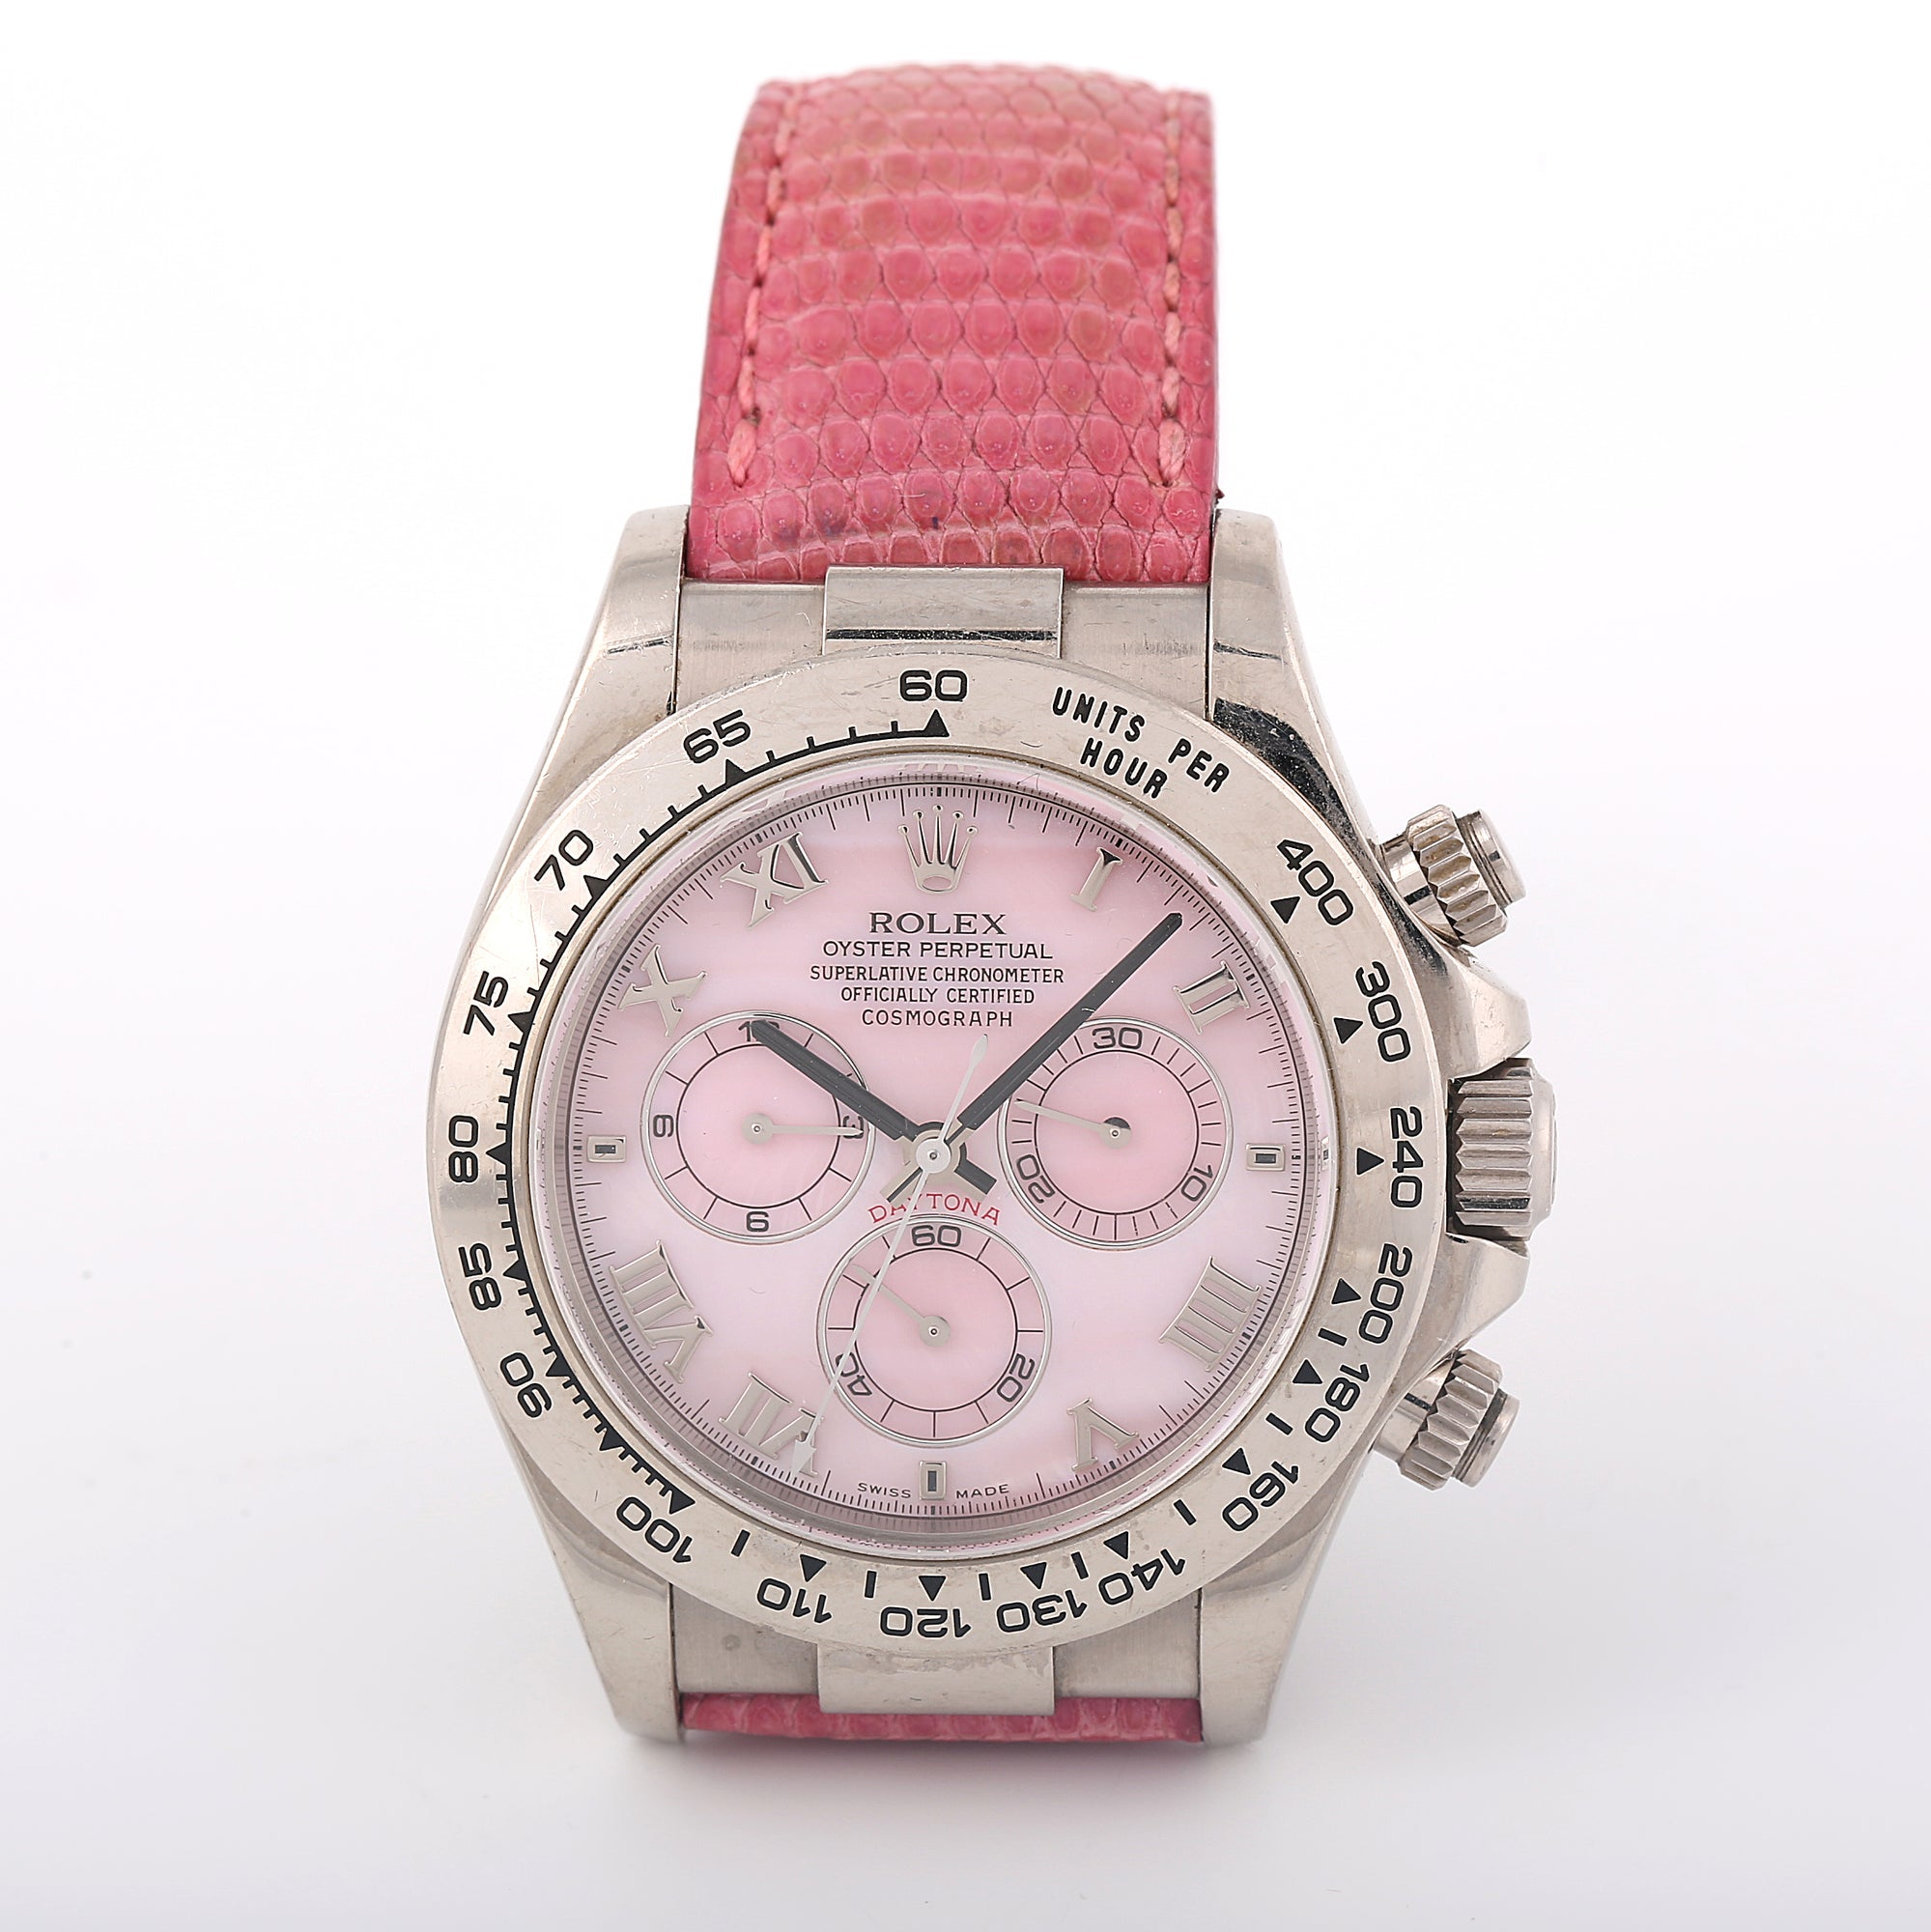 Rolex Oyster Perpetual Daytona Beach Pink Mother Of Pearl Ref 116519